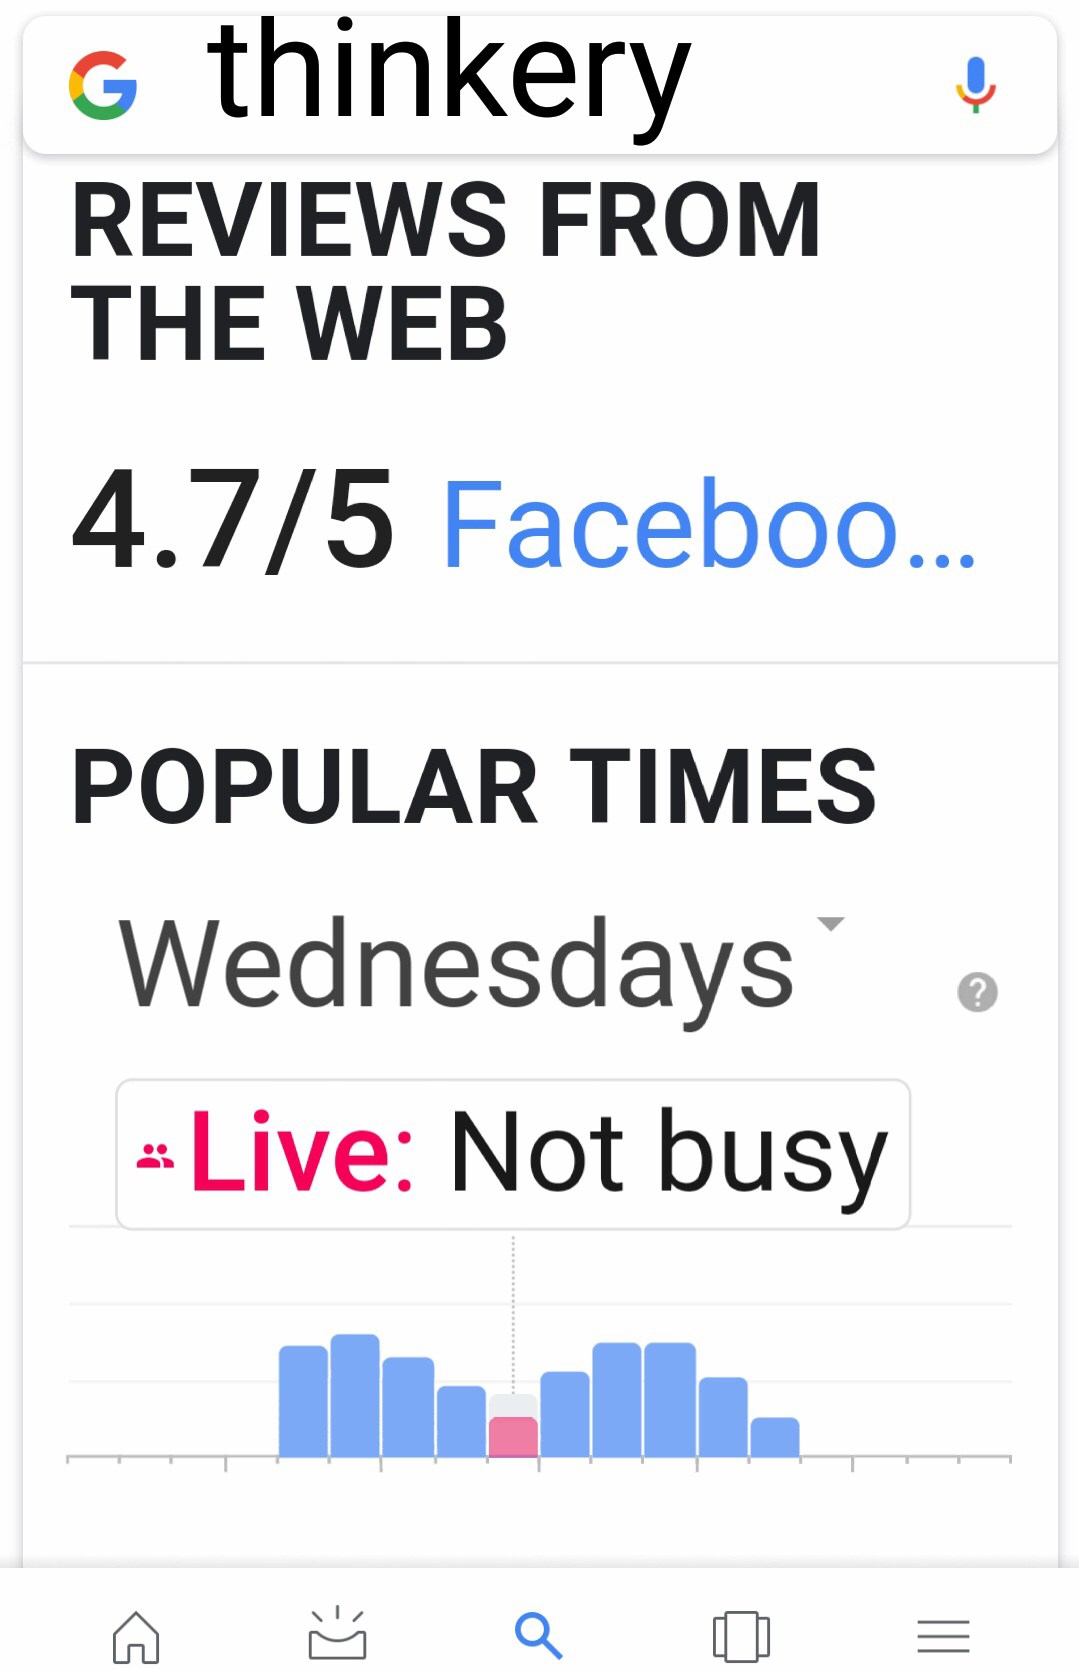 Screenshot of Google's popular times for Thinkery Museum.